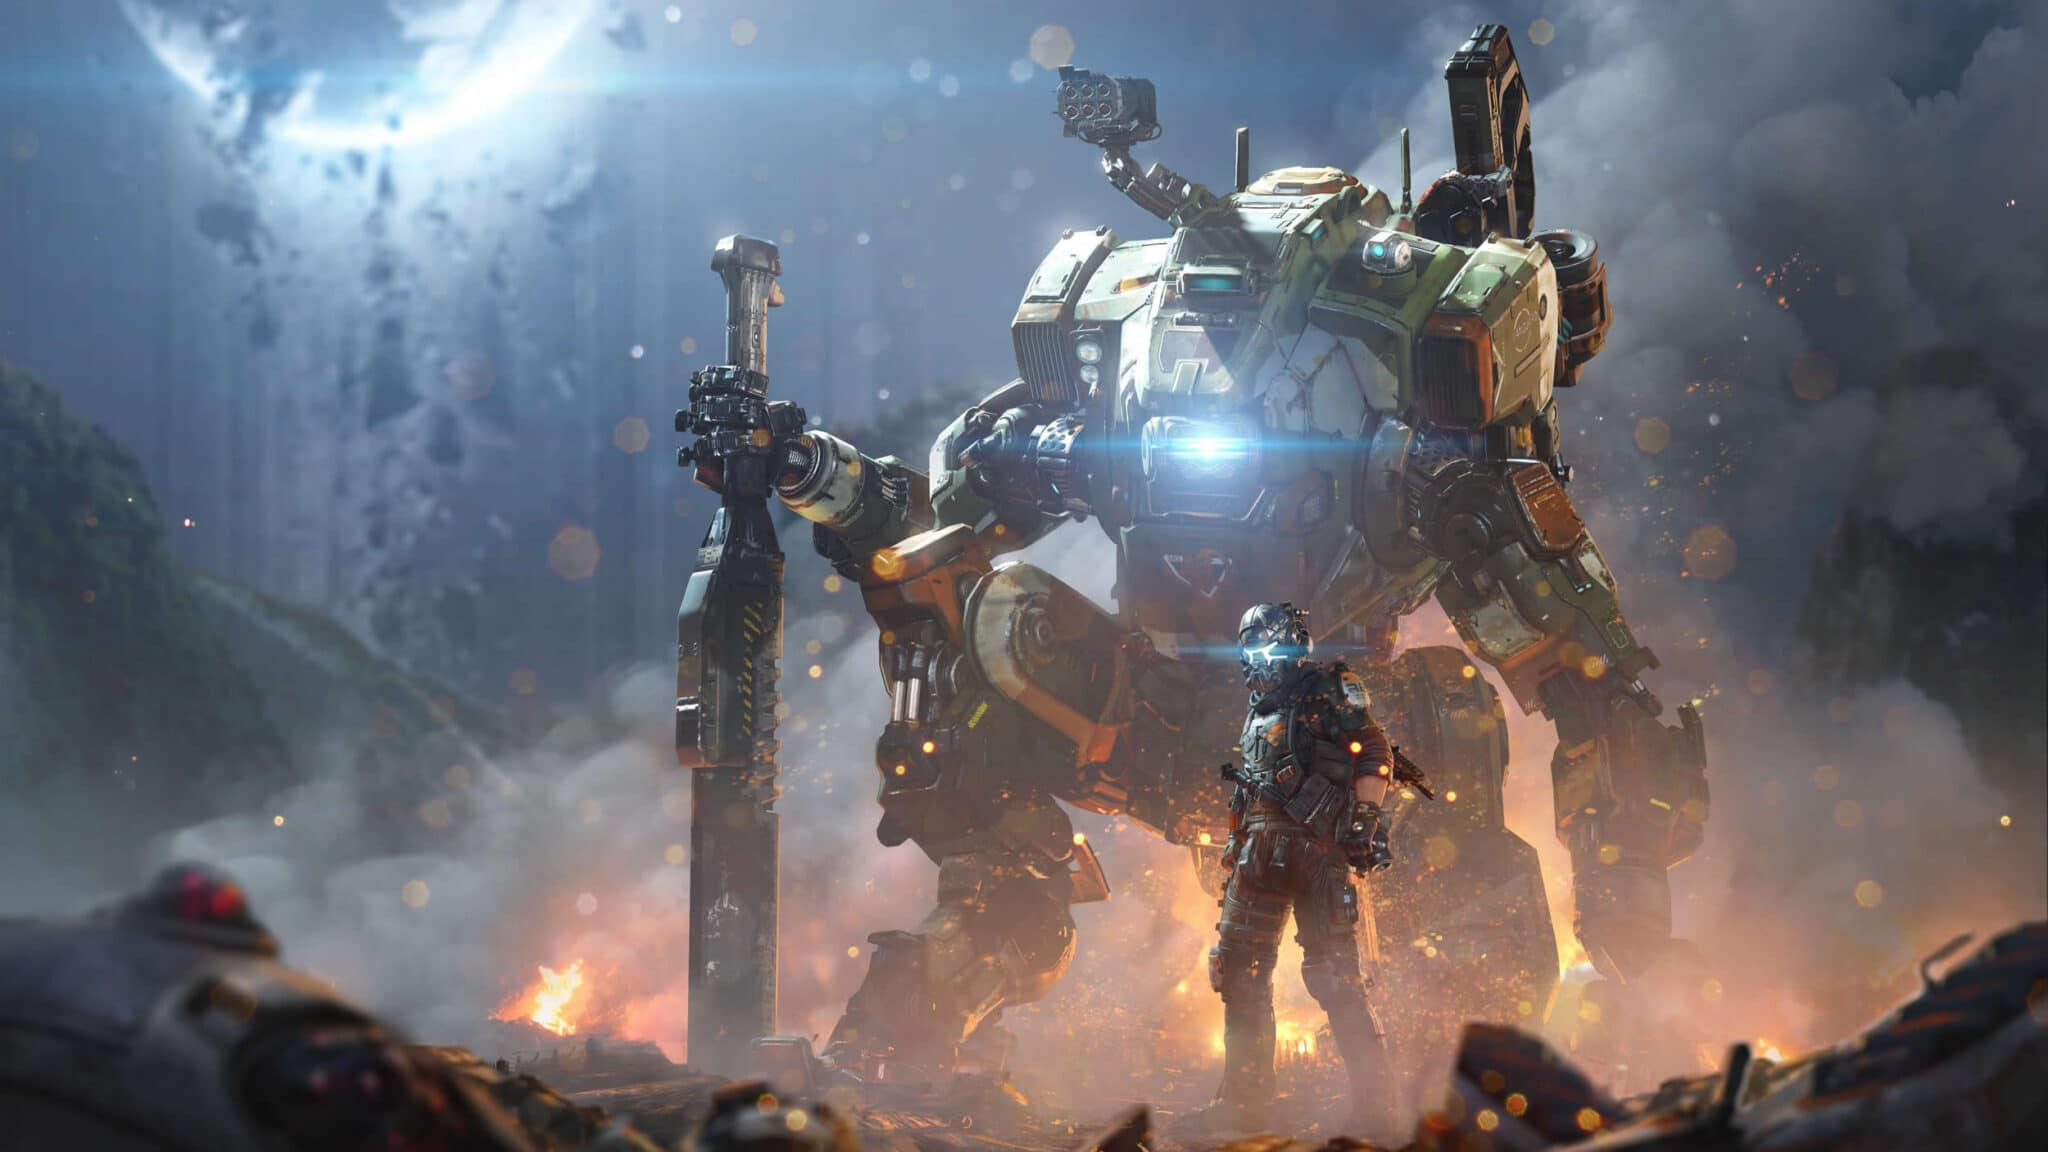 Prepare for Titanfall: Titanfall 3 is in the works